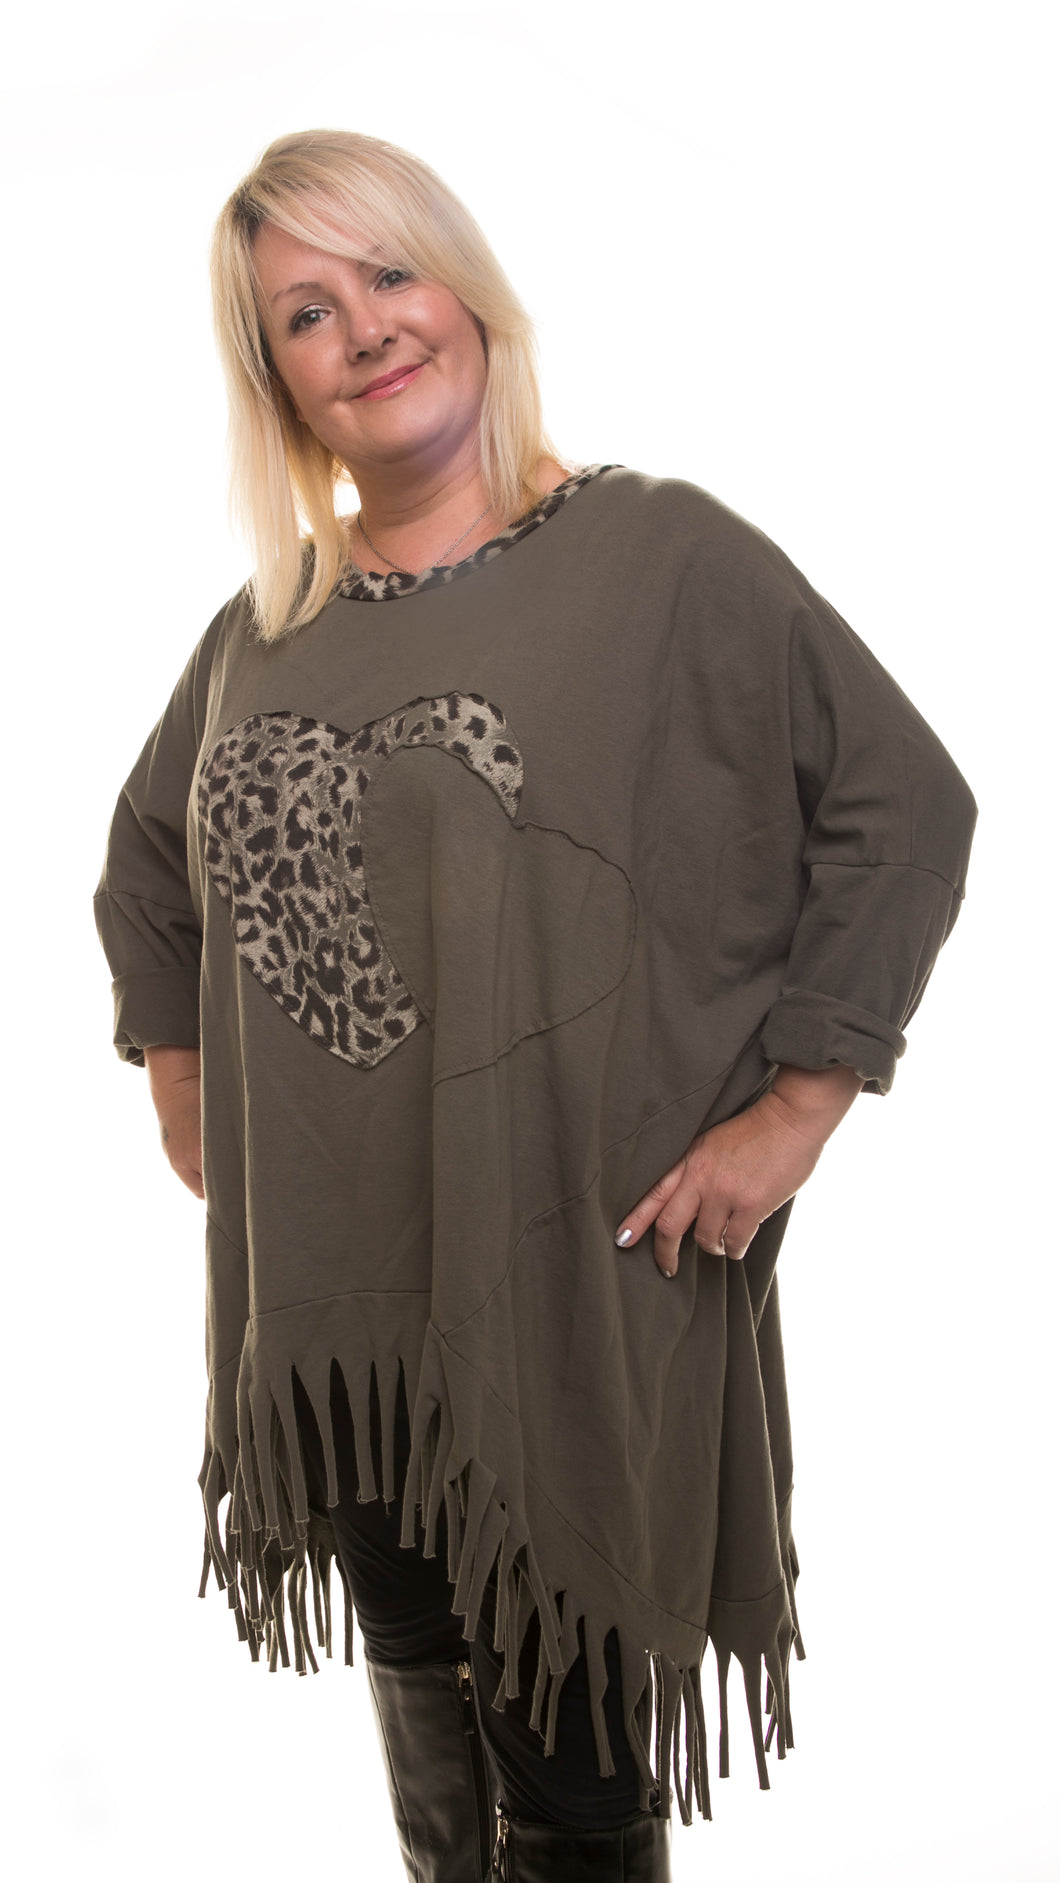 Heart Style Tunic Long Top - Olive - DressMyMood.co.uk